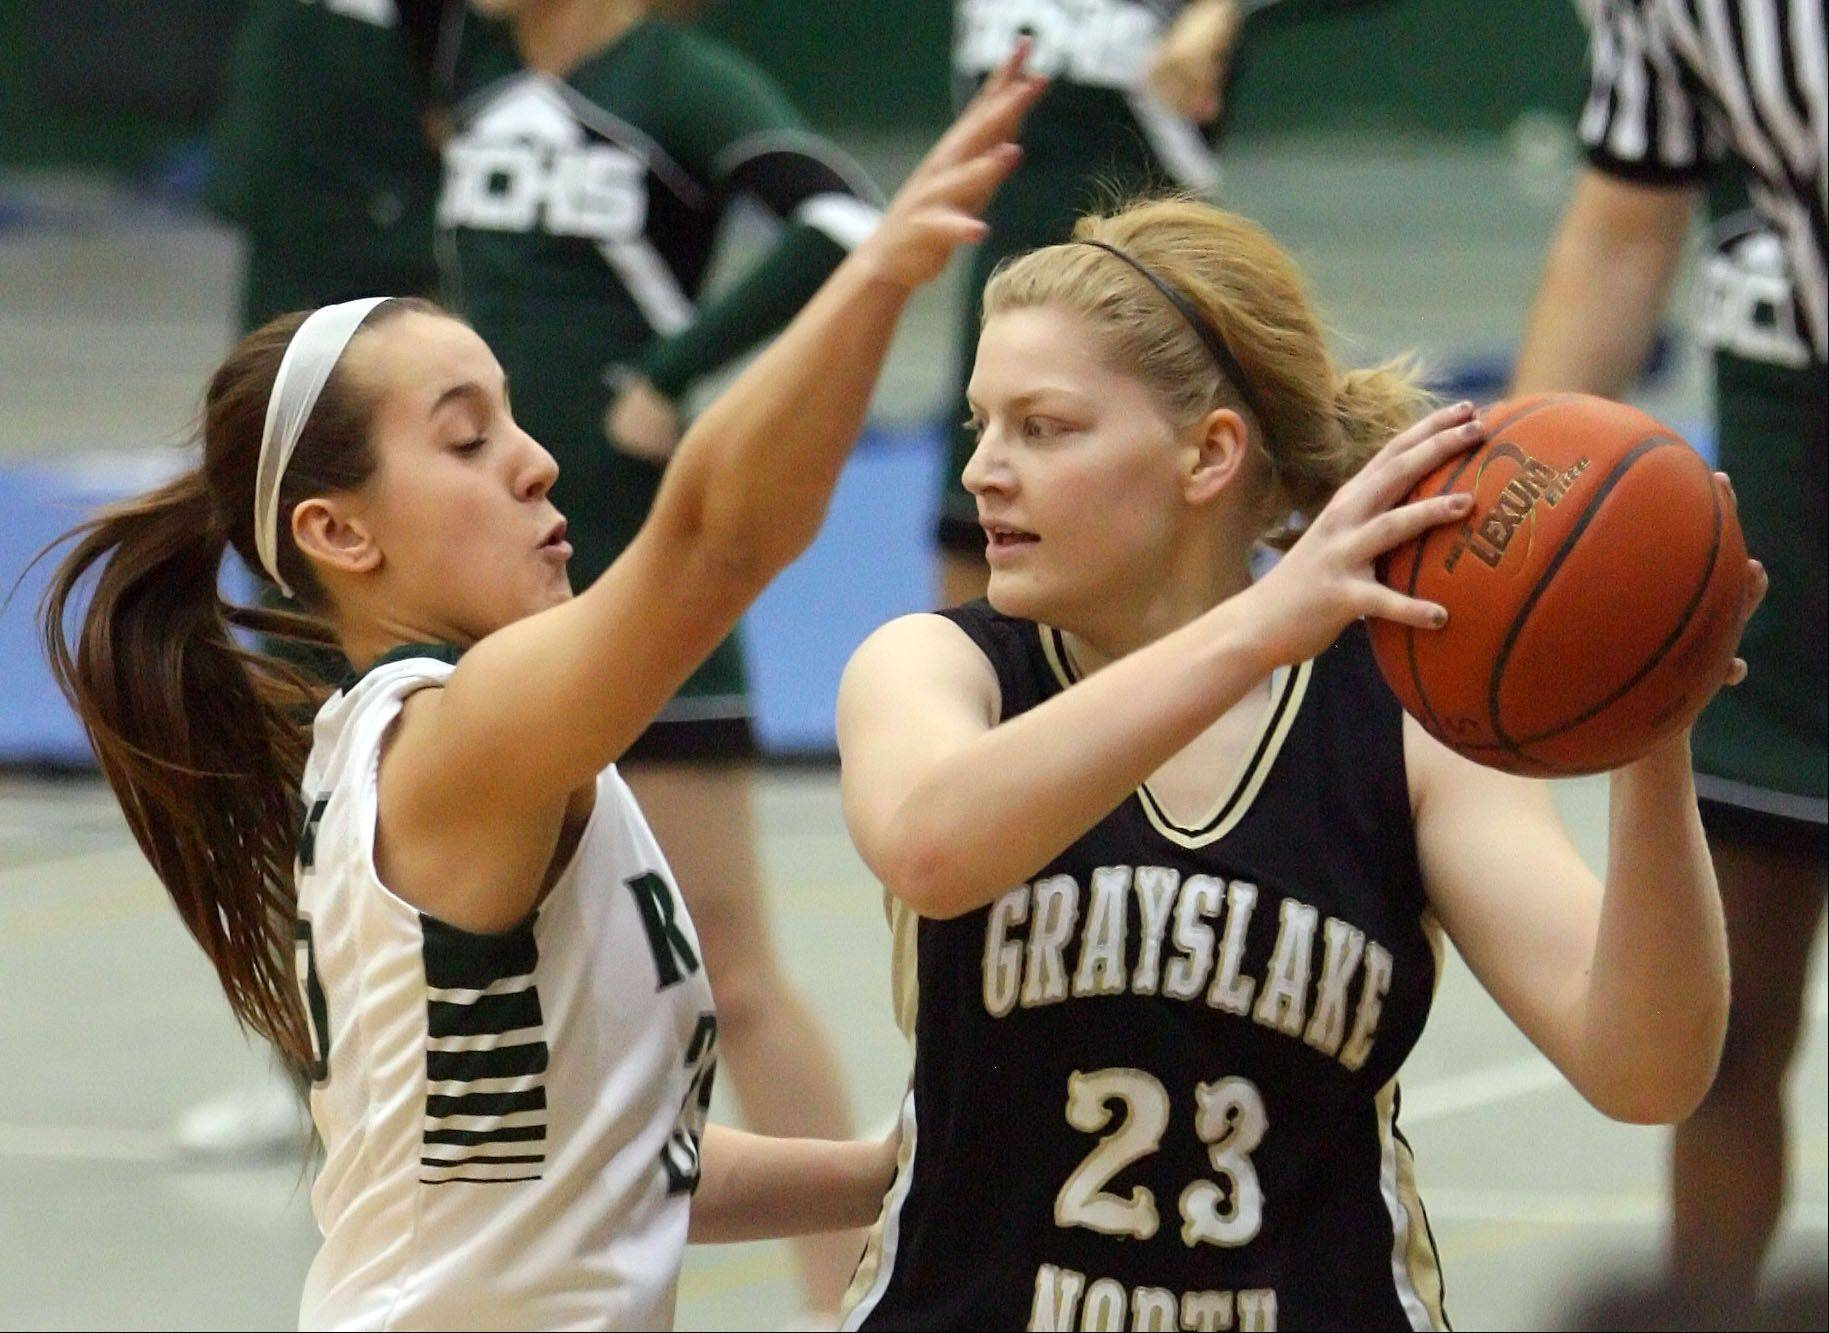 Grayslake Central's Taylor Peterson, left, defends against Grayslake North's Joanna Guhl on Tuesday night at Grayslake Central.